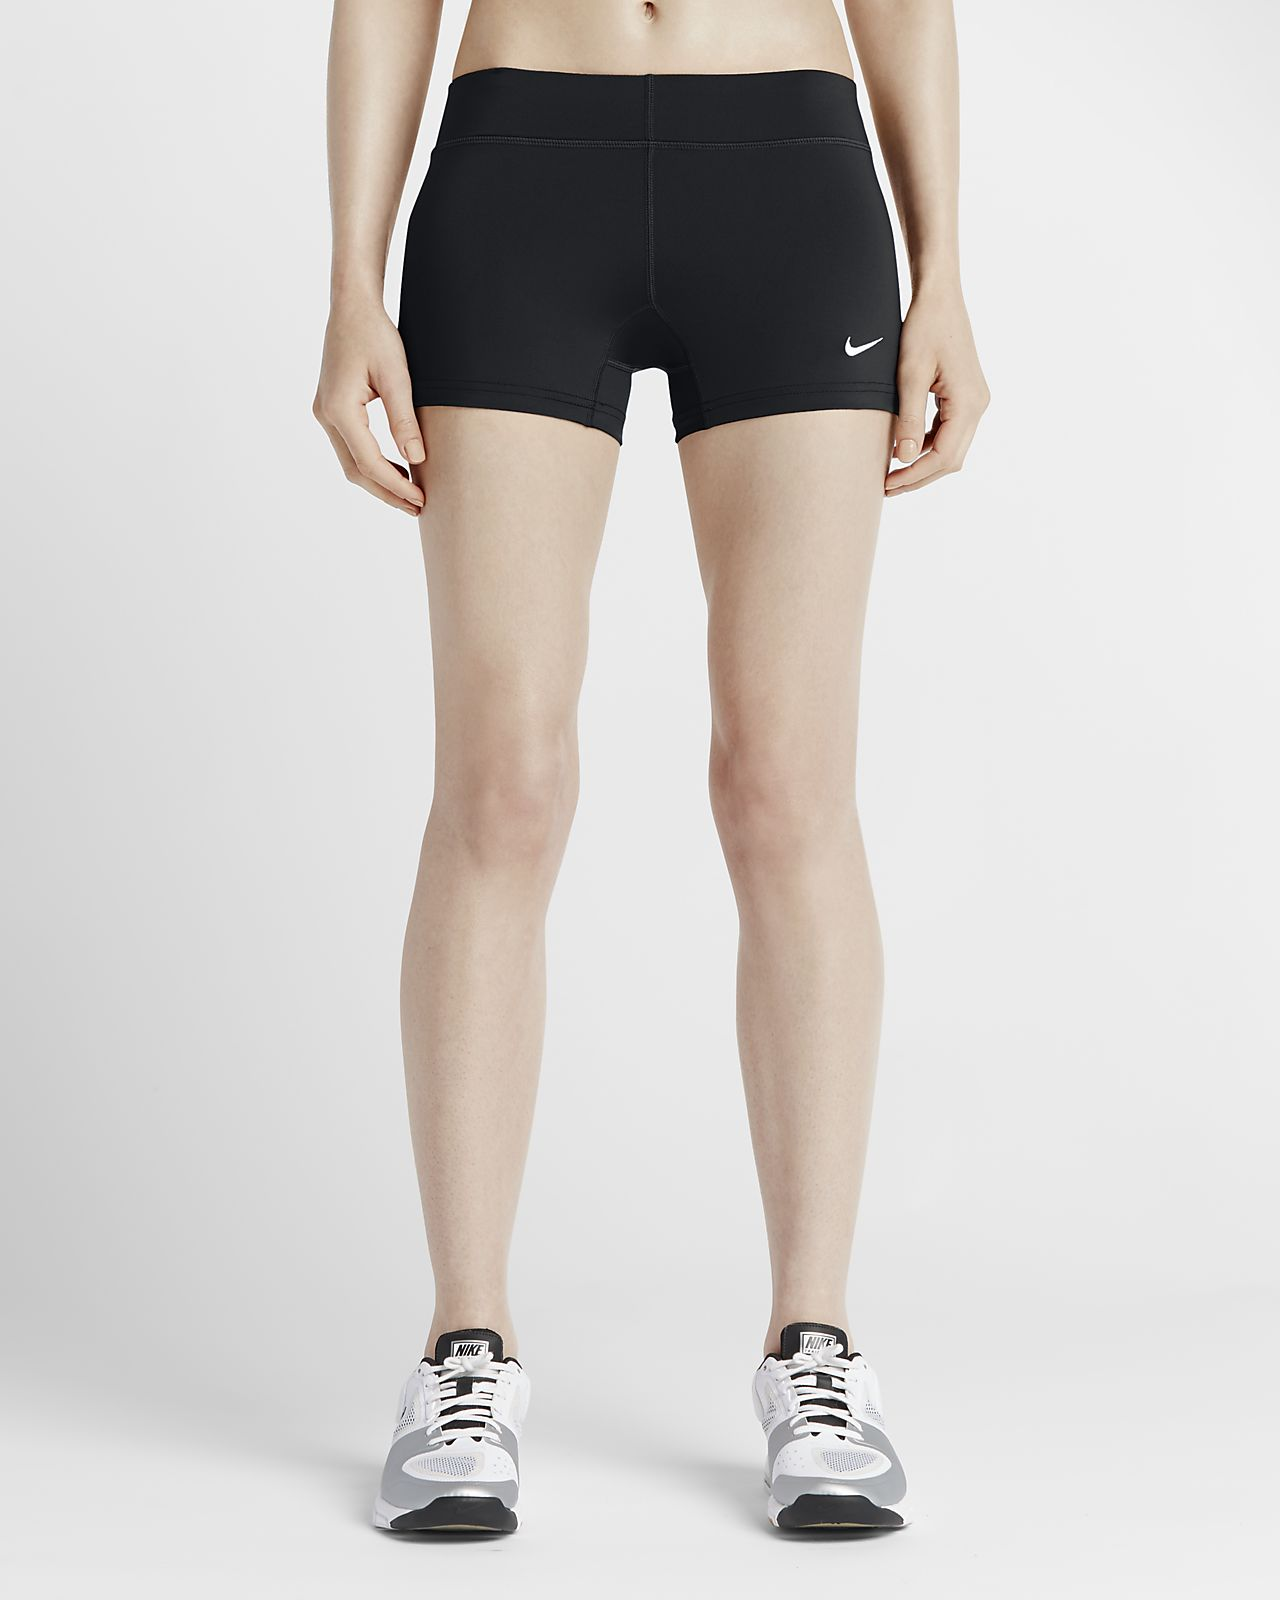 Nike Volleyball Performance Women's Training Shorts